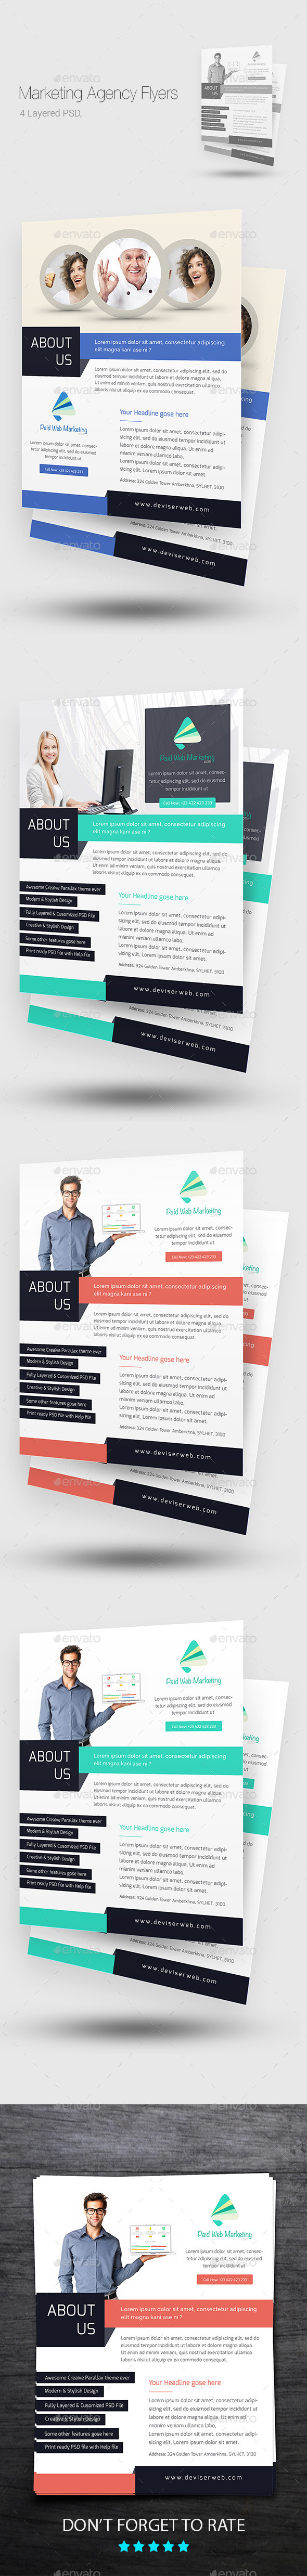 Creative Marketing Agency Flyer/Poster Templates  - Corporate Flyers